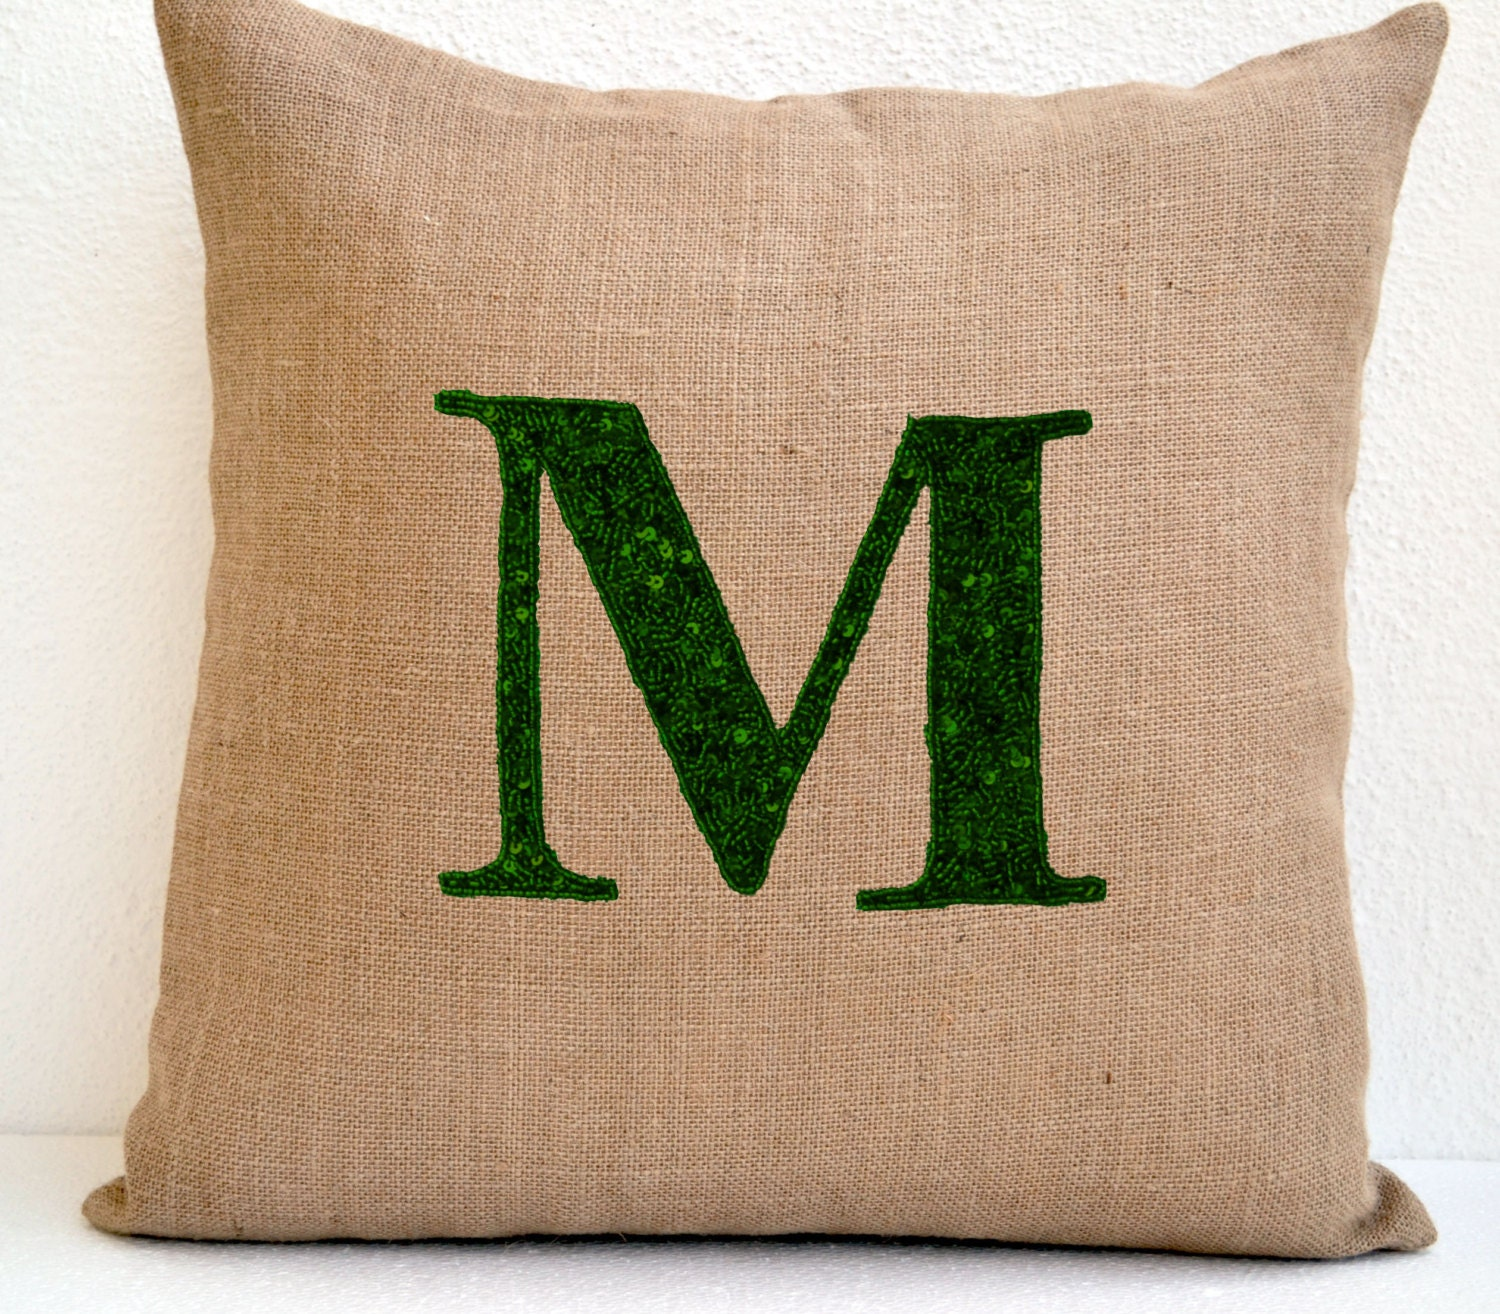 Decorative Pillows With Monogram : Personalized Sequin Monogram Decorative Pillow Cover Sequin